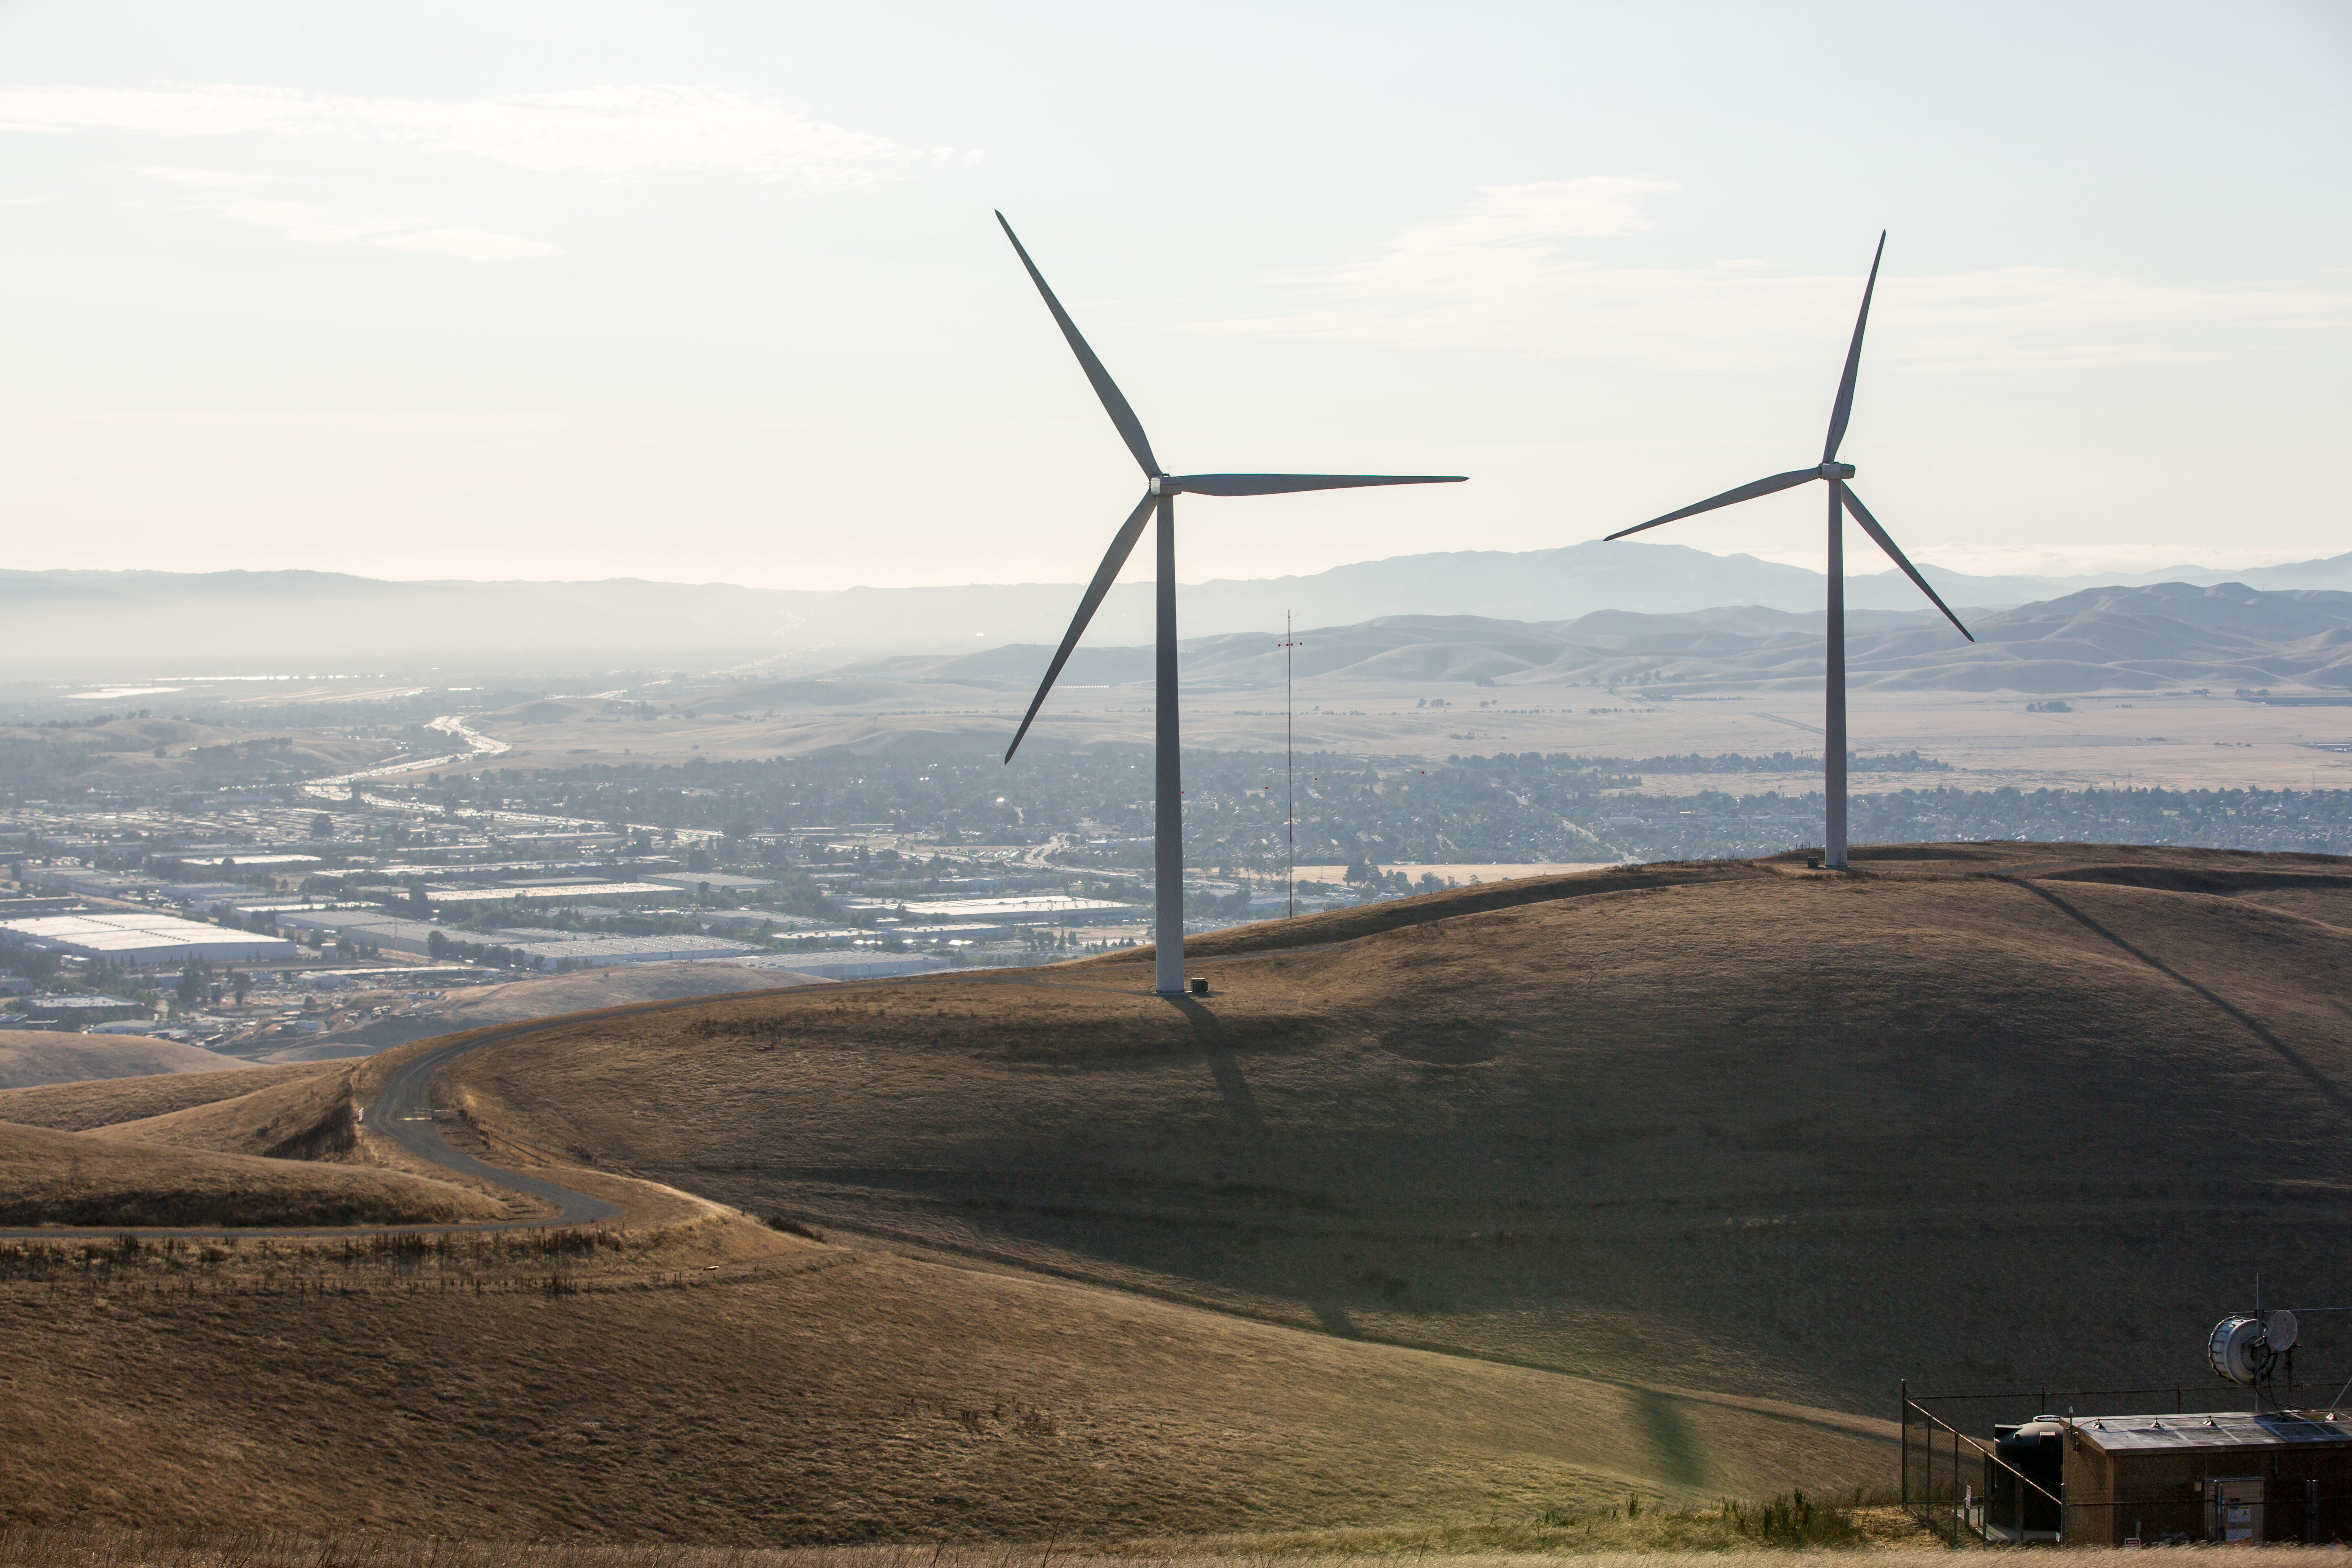 two wind turbines on a hill overlooking a town